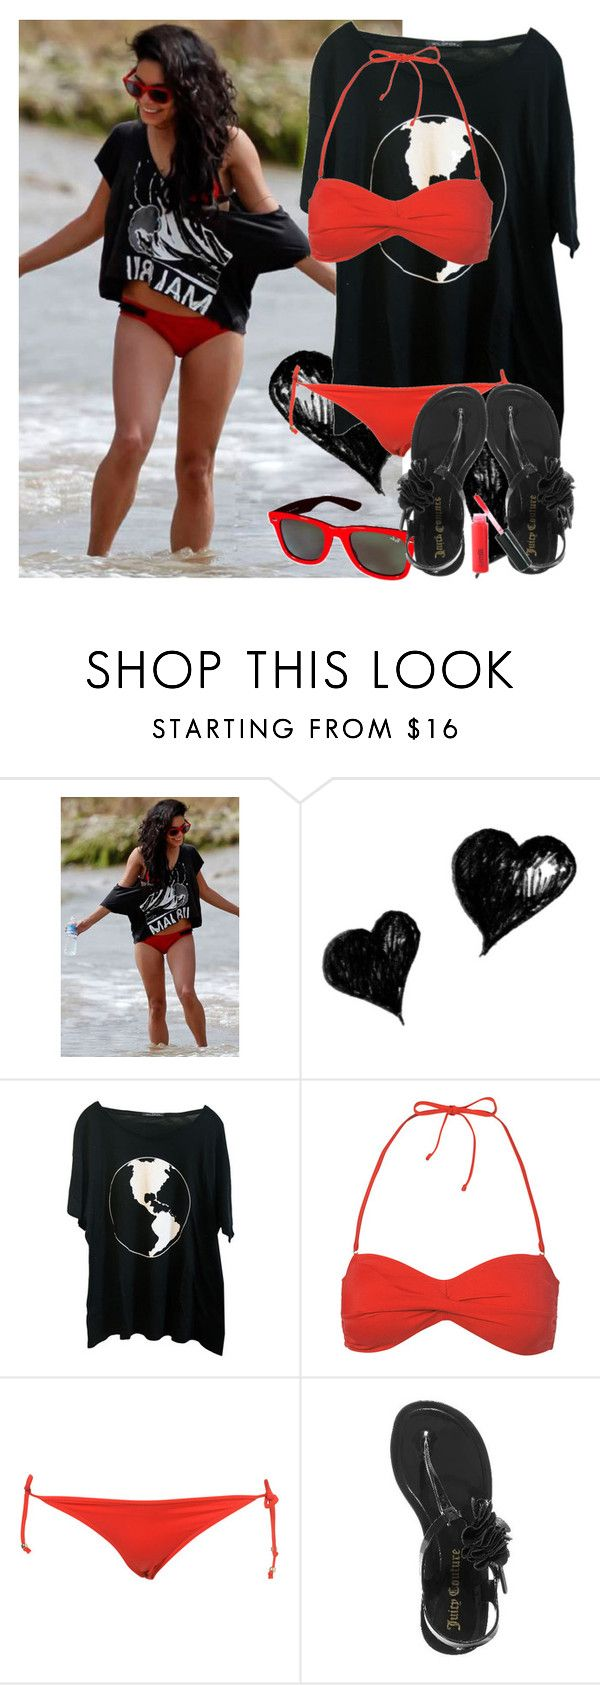 """""""220. vanessa"""" by rebby93 ❤ liked on Polyvore featuring Tavik Swimwear, Ray-Ban, Wildfox, Juicy Couture, MAC Cosmetics and vanessa hudgens"""